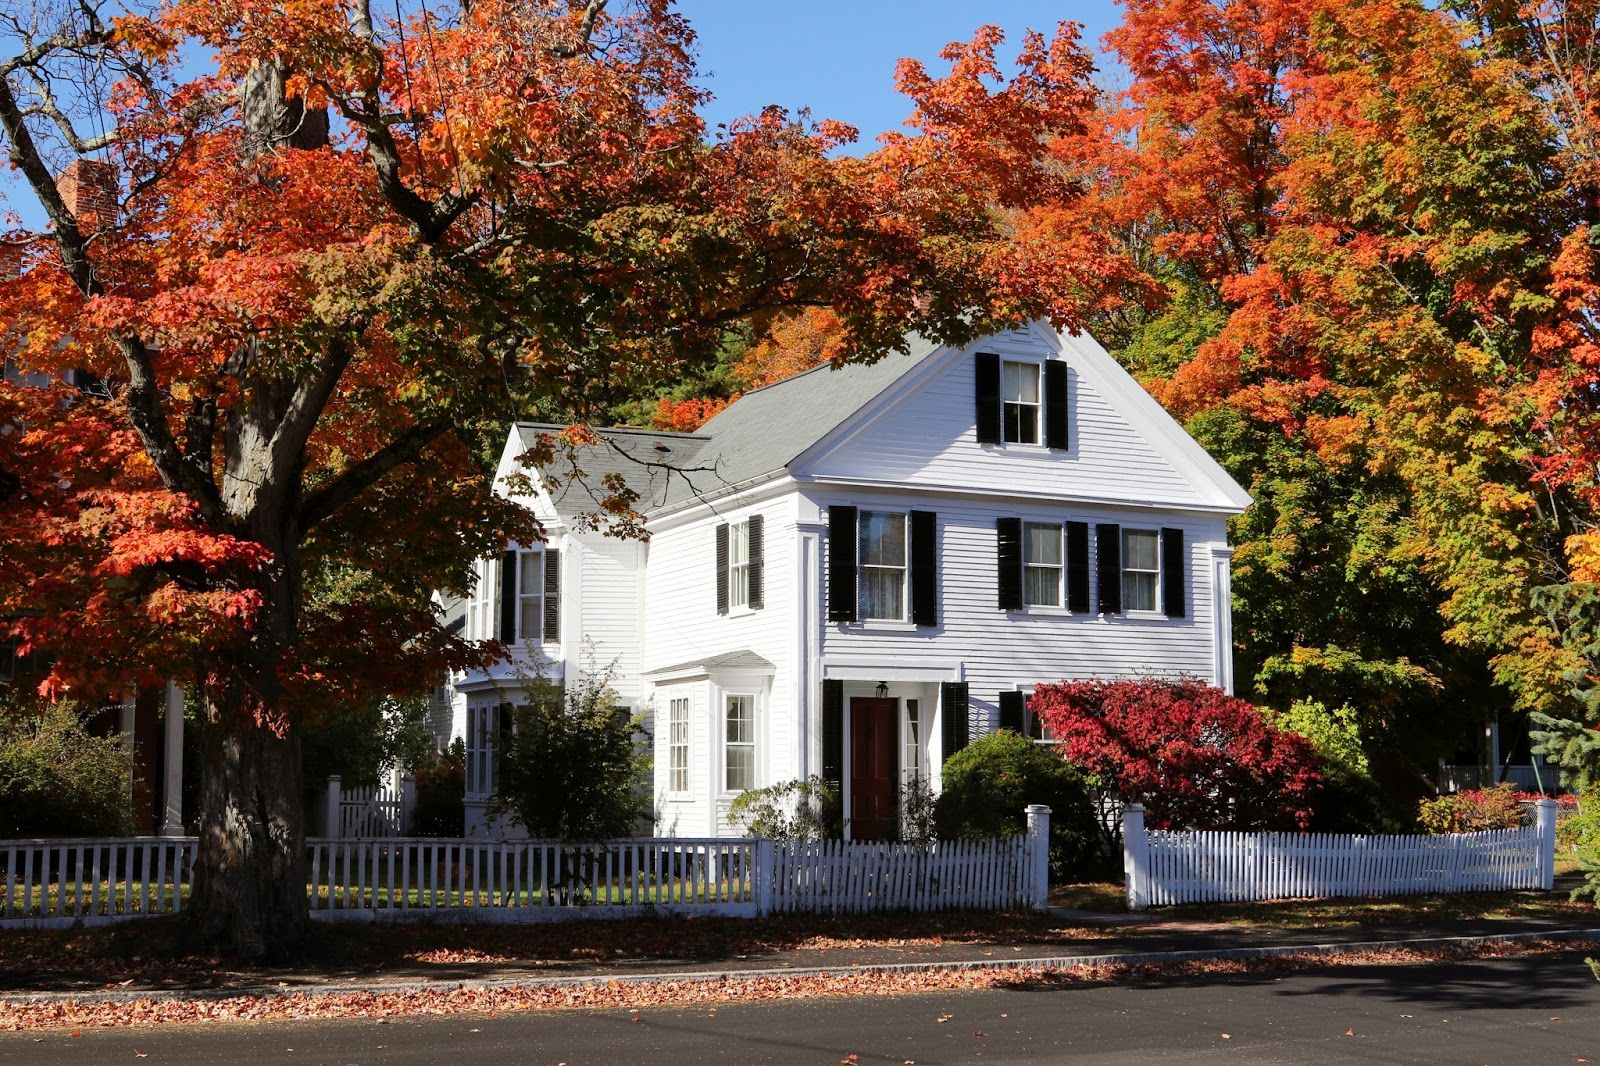 New England Autumn Village | New england homes, Autumn home, Pretty house